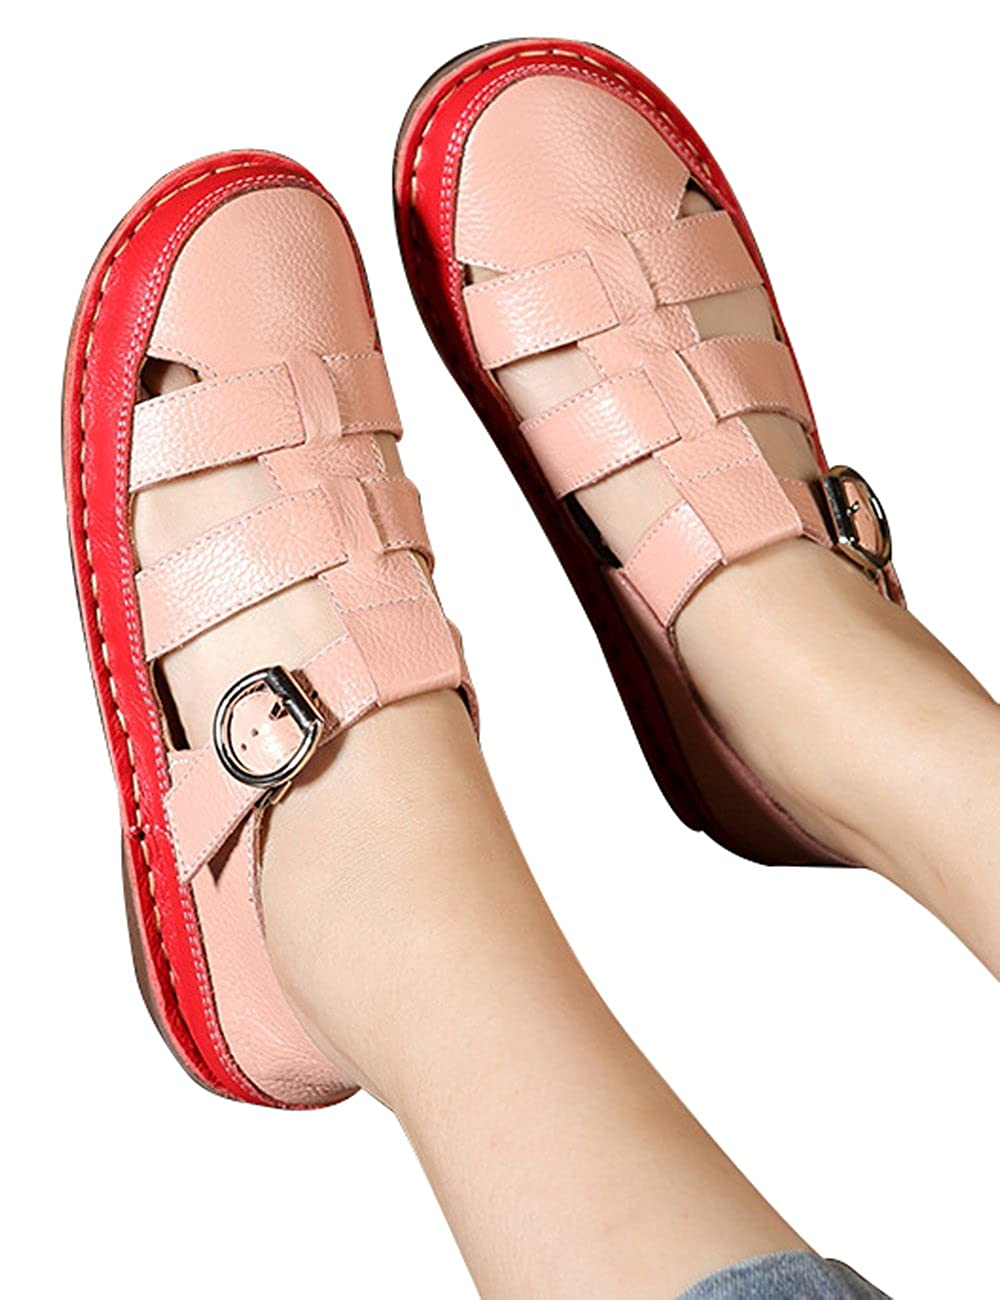 Zoulee Womens Handmade Woven Leather Sandals Beach Shoes